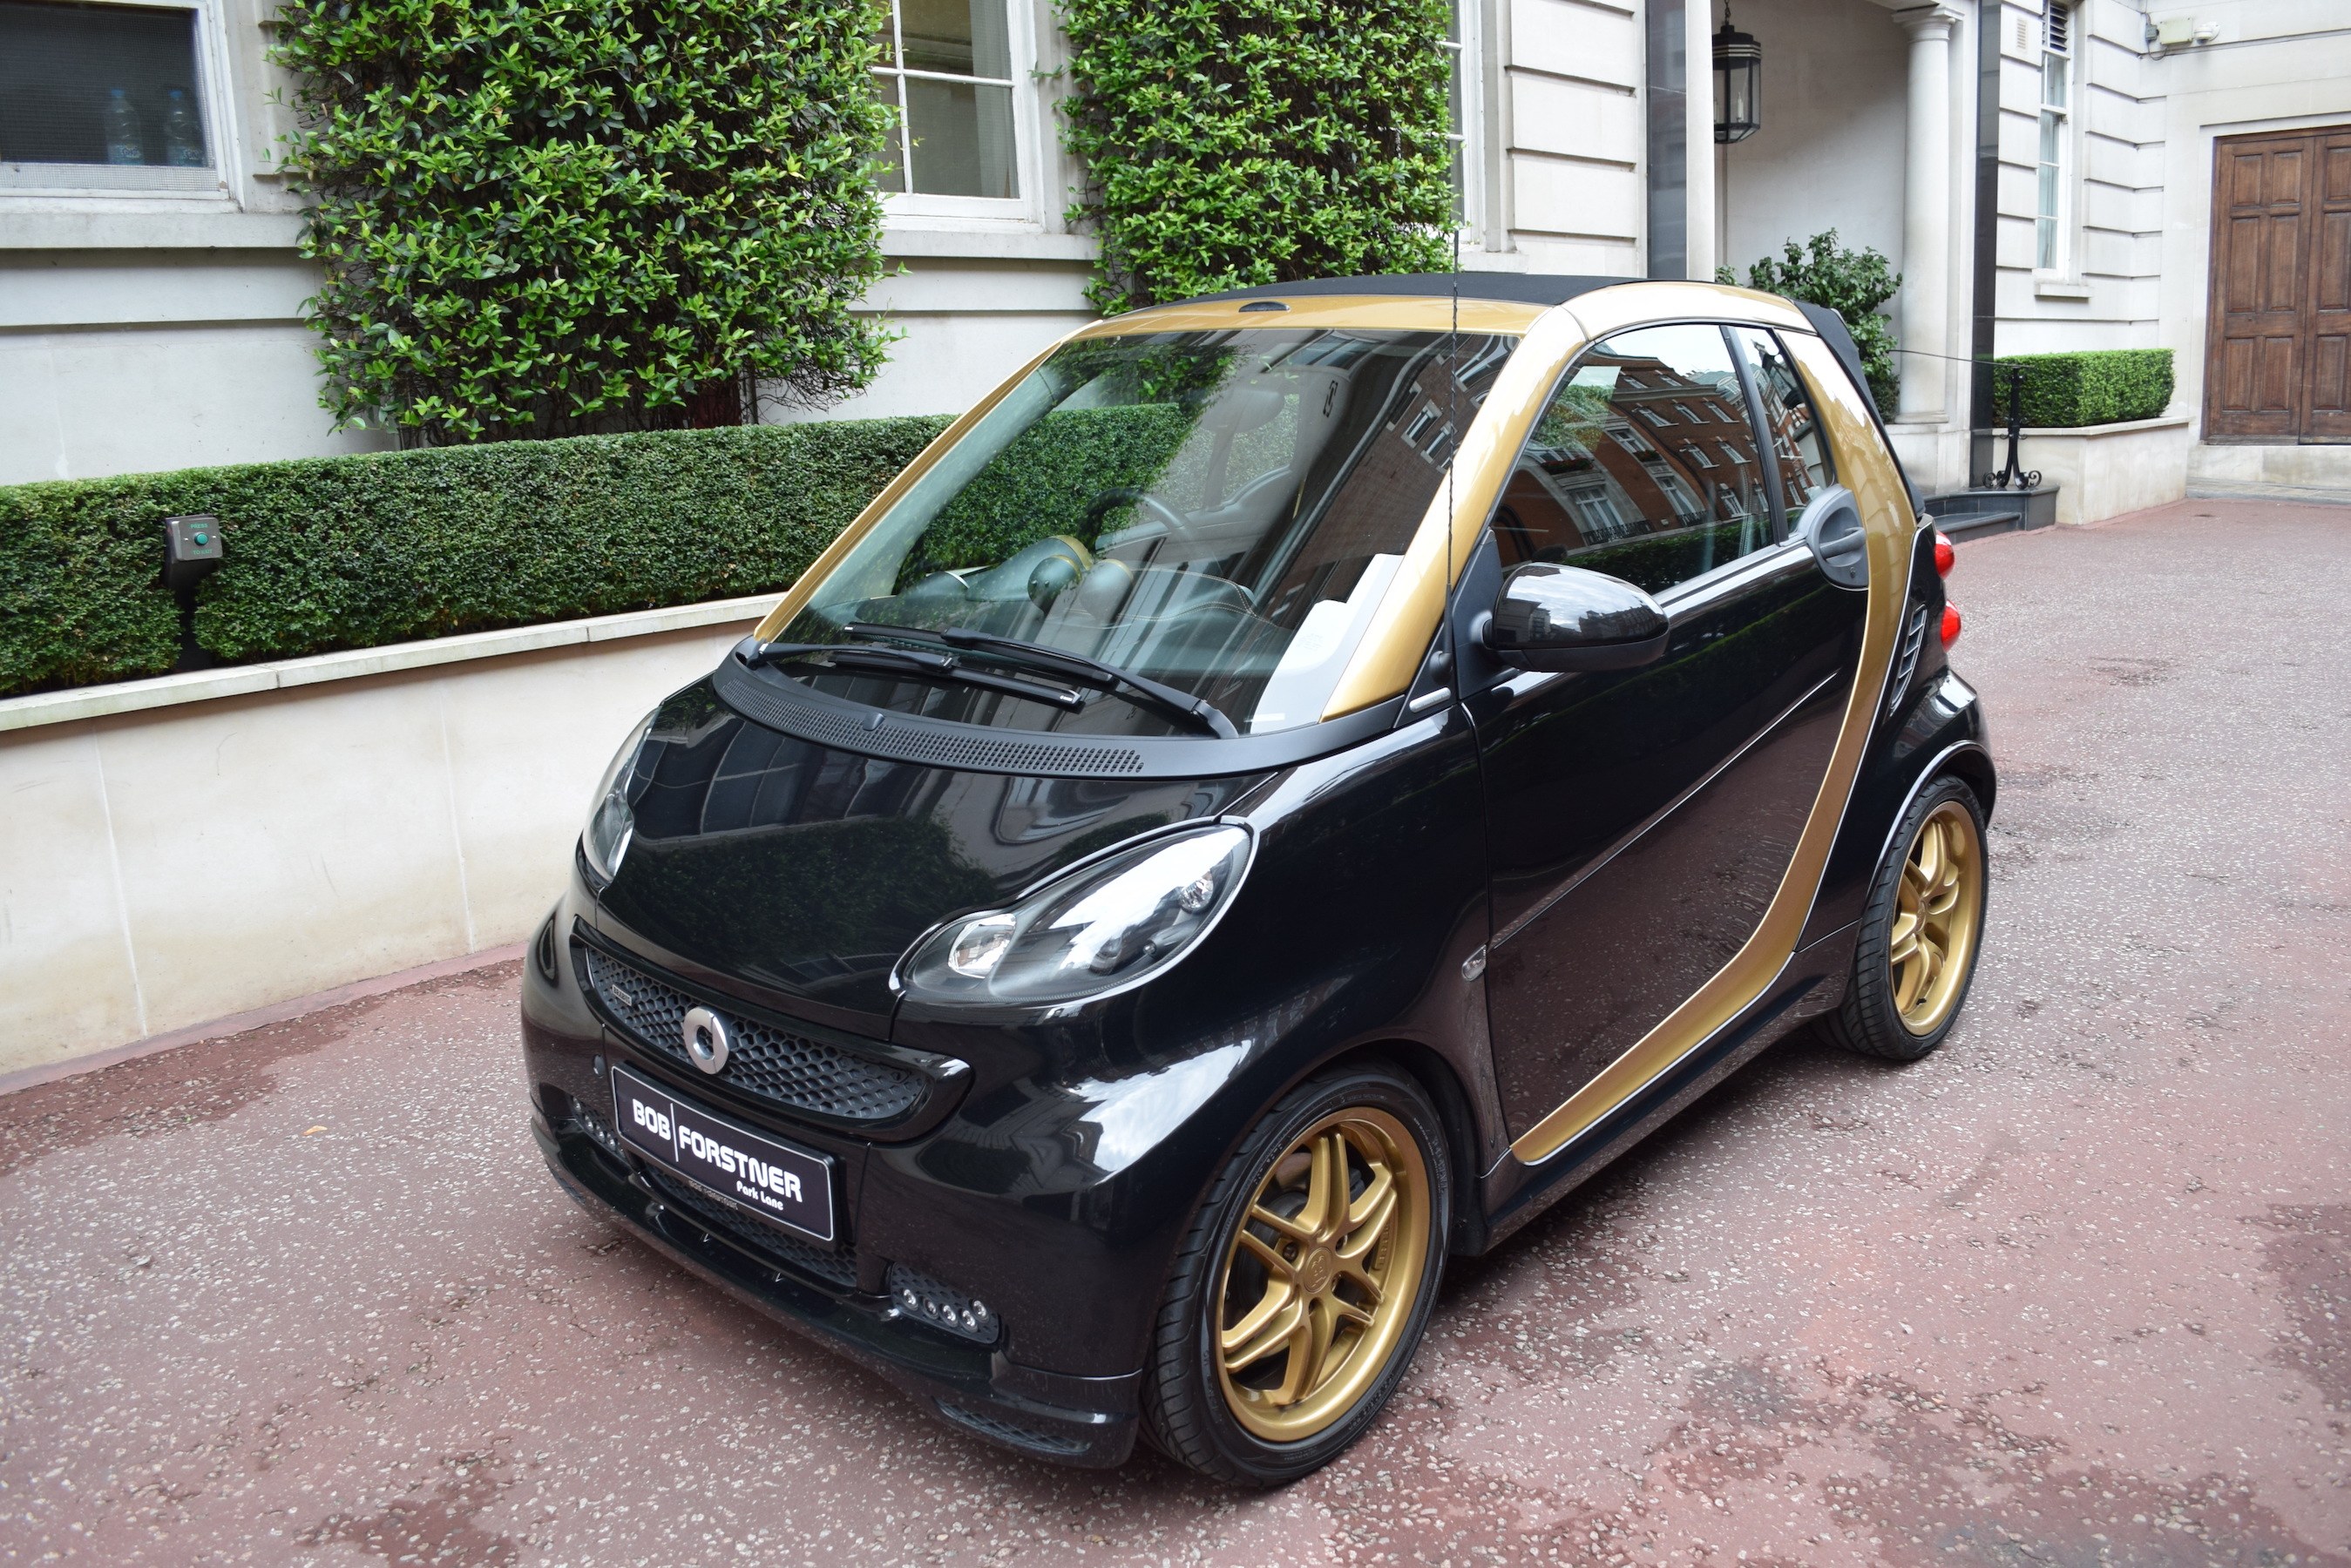 Smart fortwo Carbio BRABUS black & gold